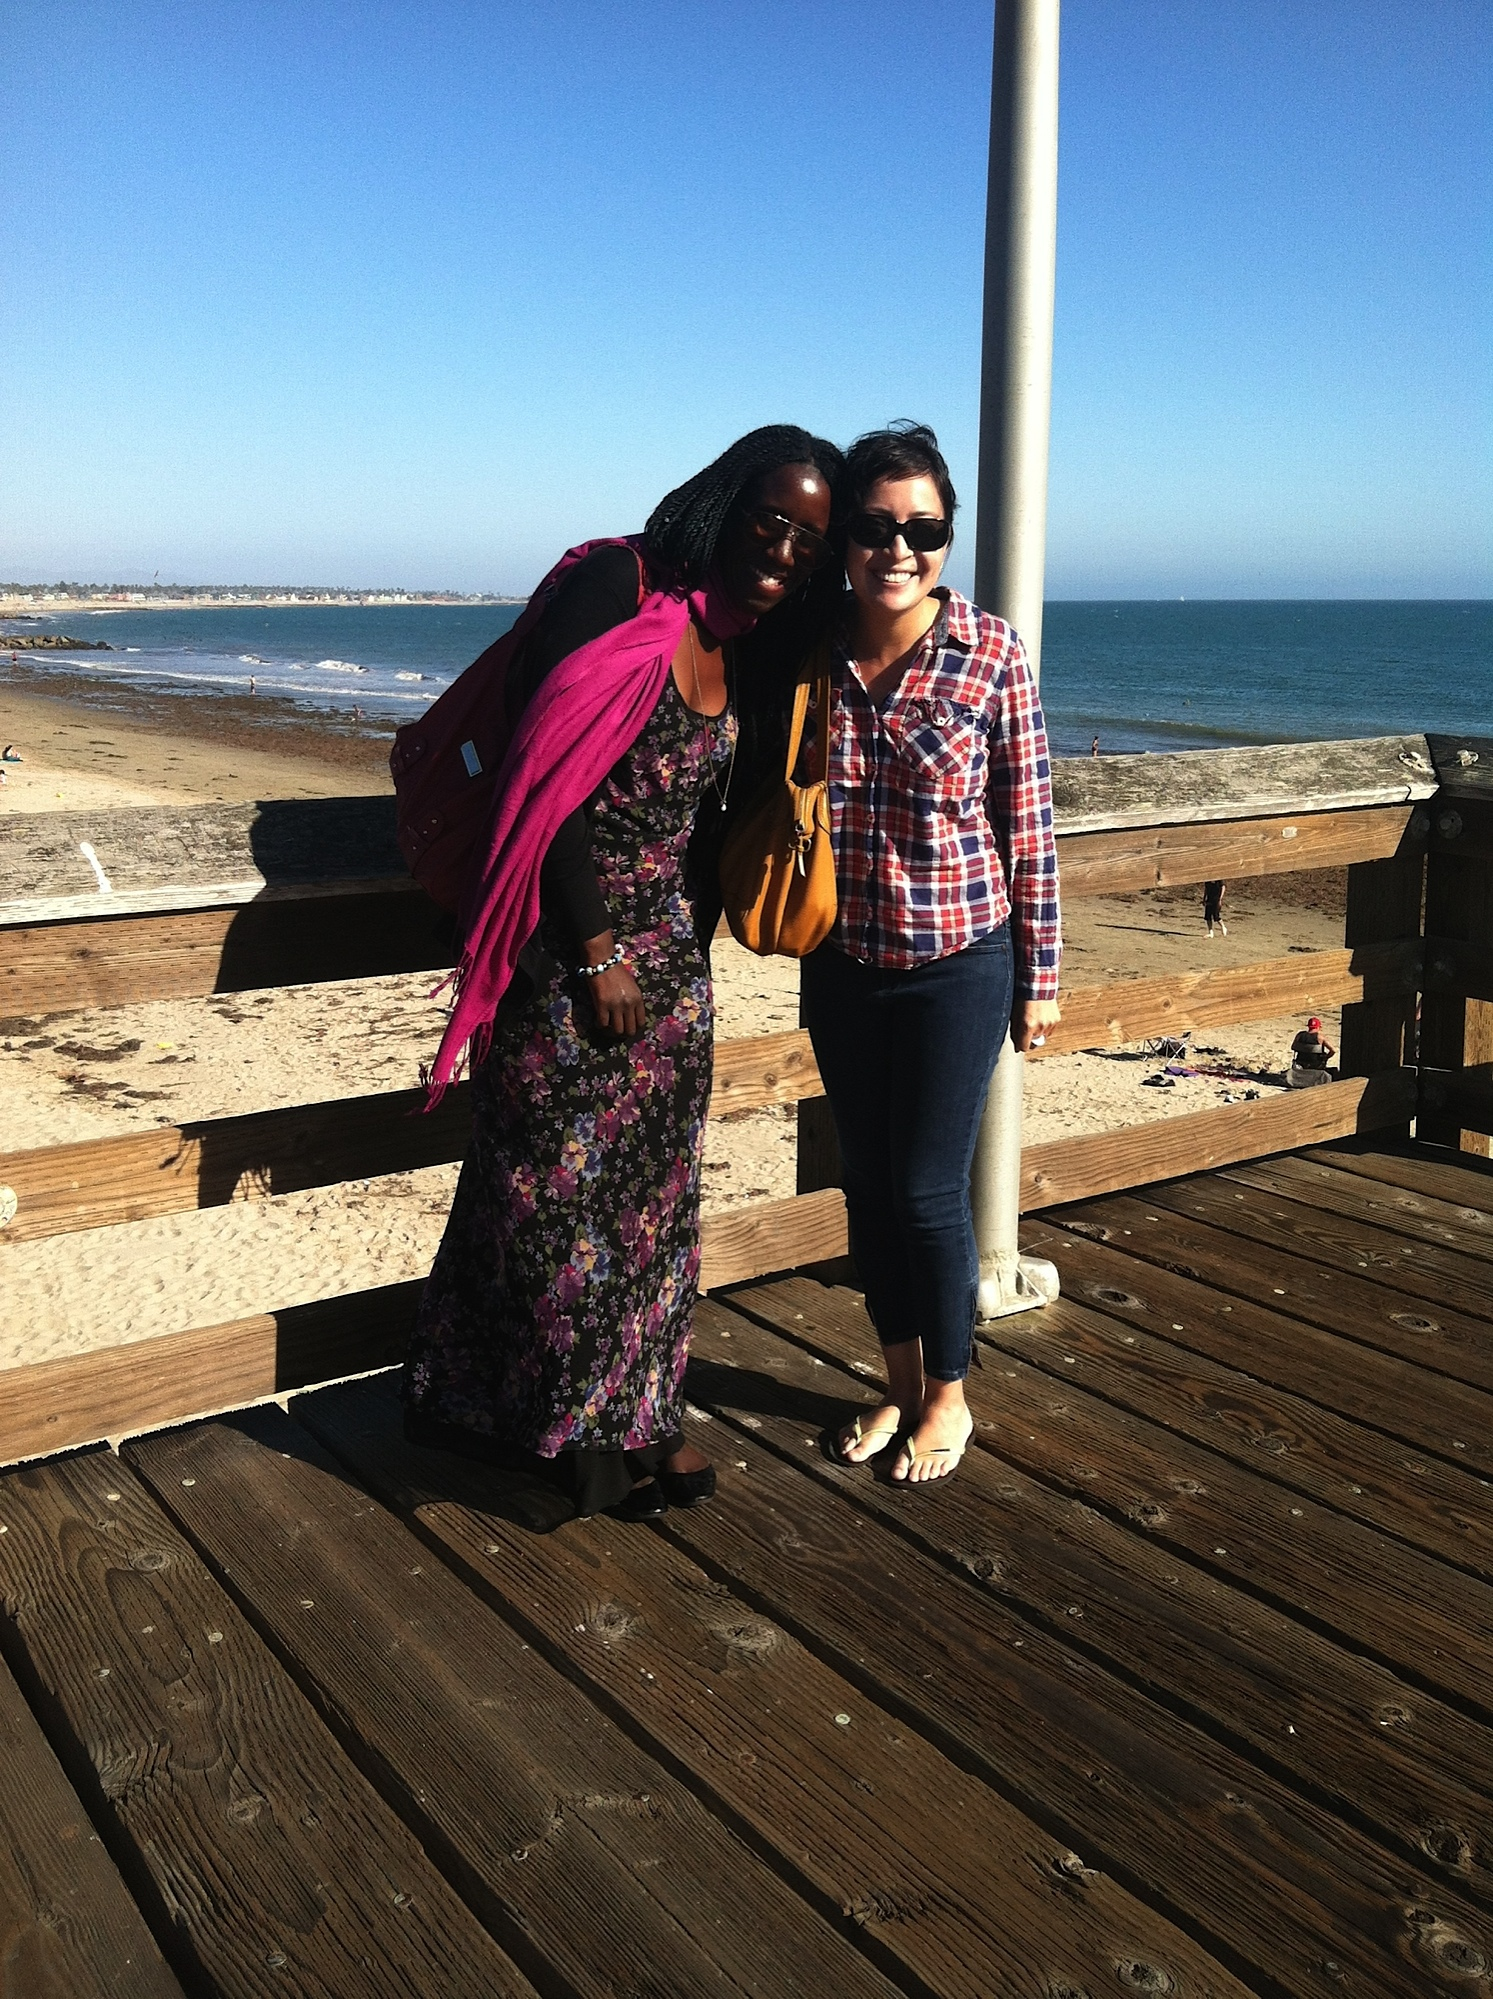 When I was working in Delano, California—it gave me a chance to reunite with one of my first friends I made in Los Angeles, Bintou. It was a treat to go to the coast after those 110+ degree days!